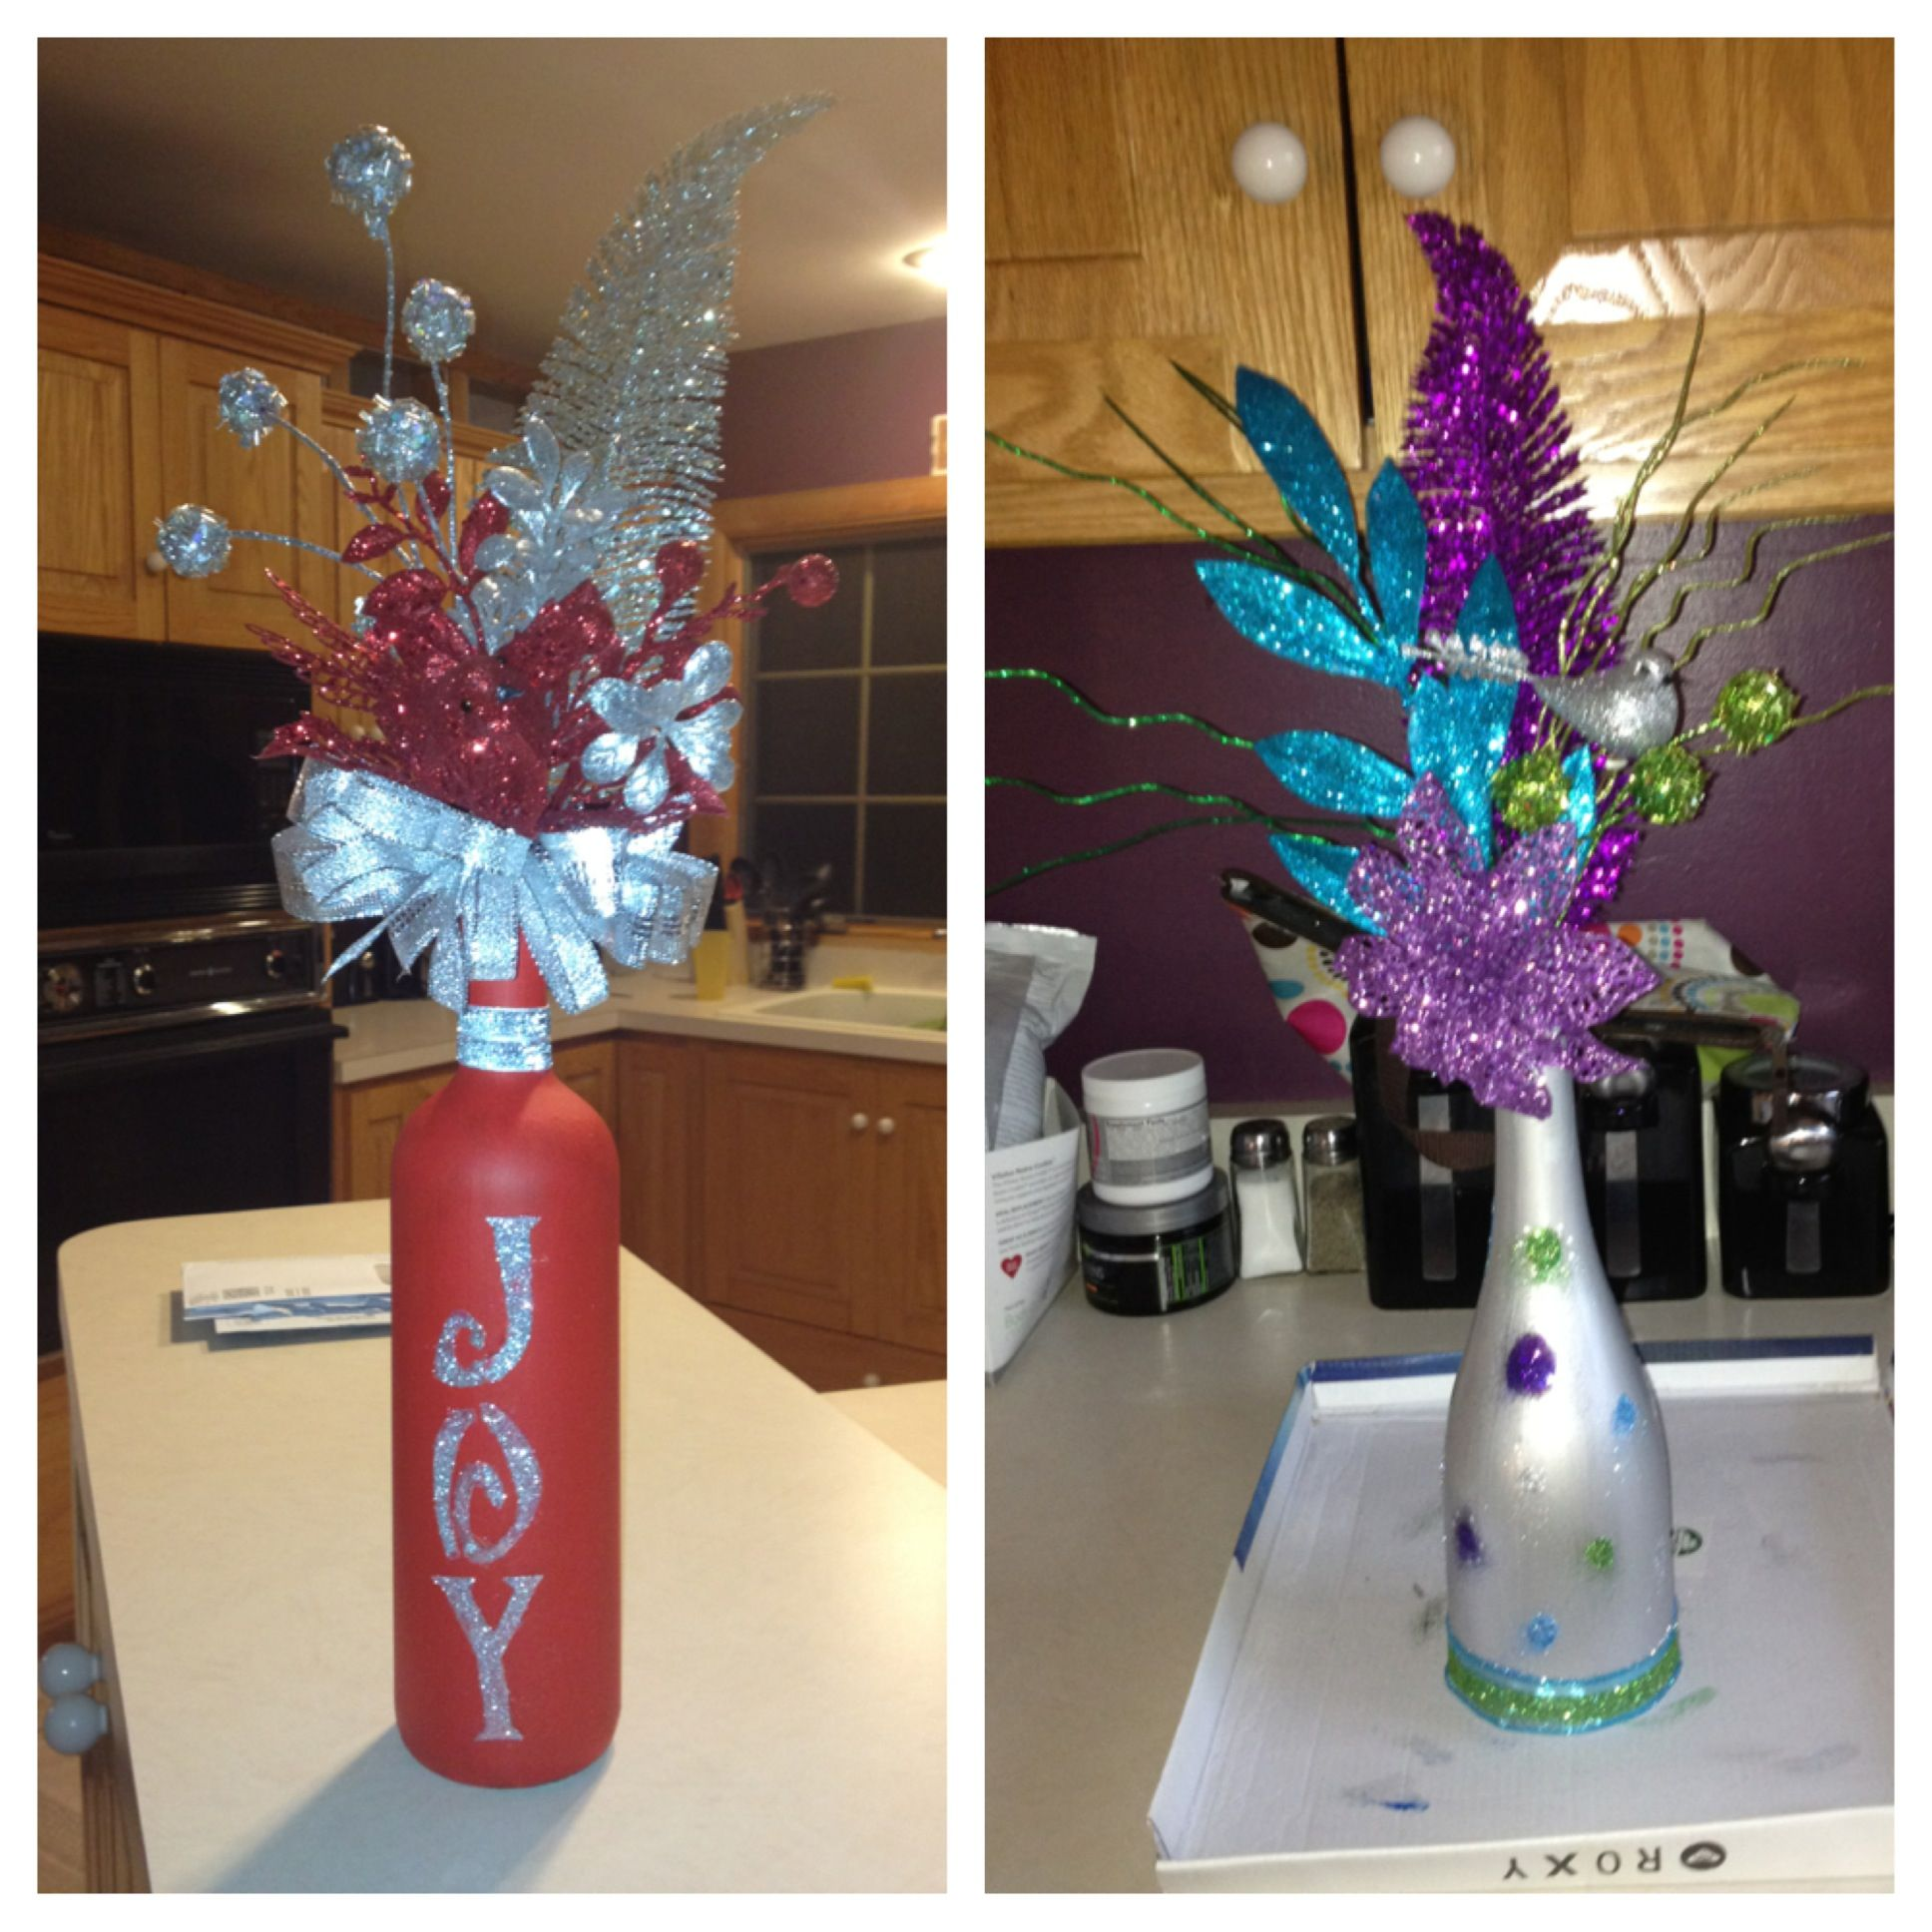 Painted wine bottles and flowers craft ideas pinterest - Craft ideas with wine bottles ...